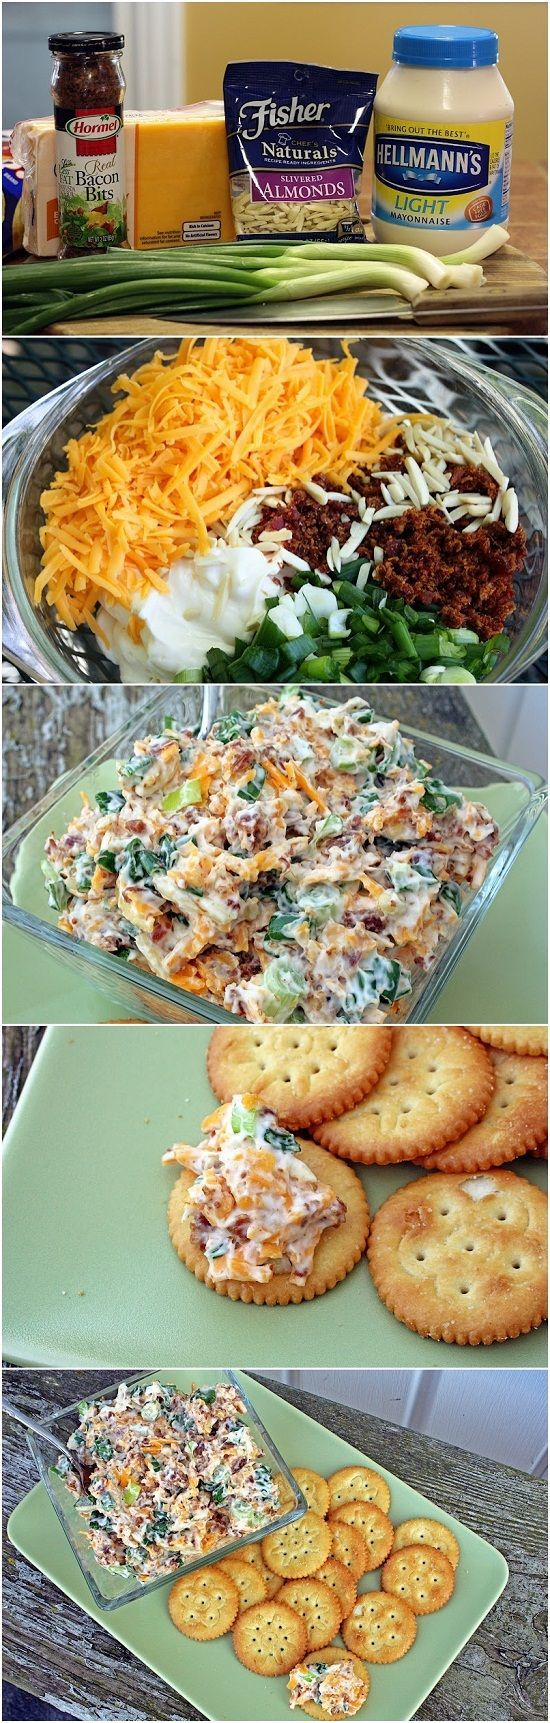 Neiman Marcus Dip...INGREDIENTS: 6 Green Onions, Chopped*8 Oz. Cheddar Cheese, Shredded*1½ C Mayonnaise*1 Jar Hormel Real Bacon Bits*1 Pkg. Slivered Almonds* DIRECTIONS: Mix Onions, Cheese, Mayo, Bacon Bits, & Slivered Almonds Together. Chill For A Couple Hours. Serve With Ritz Crackers Or Corn Chips...